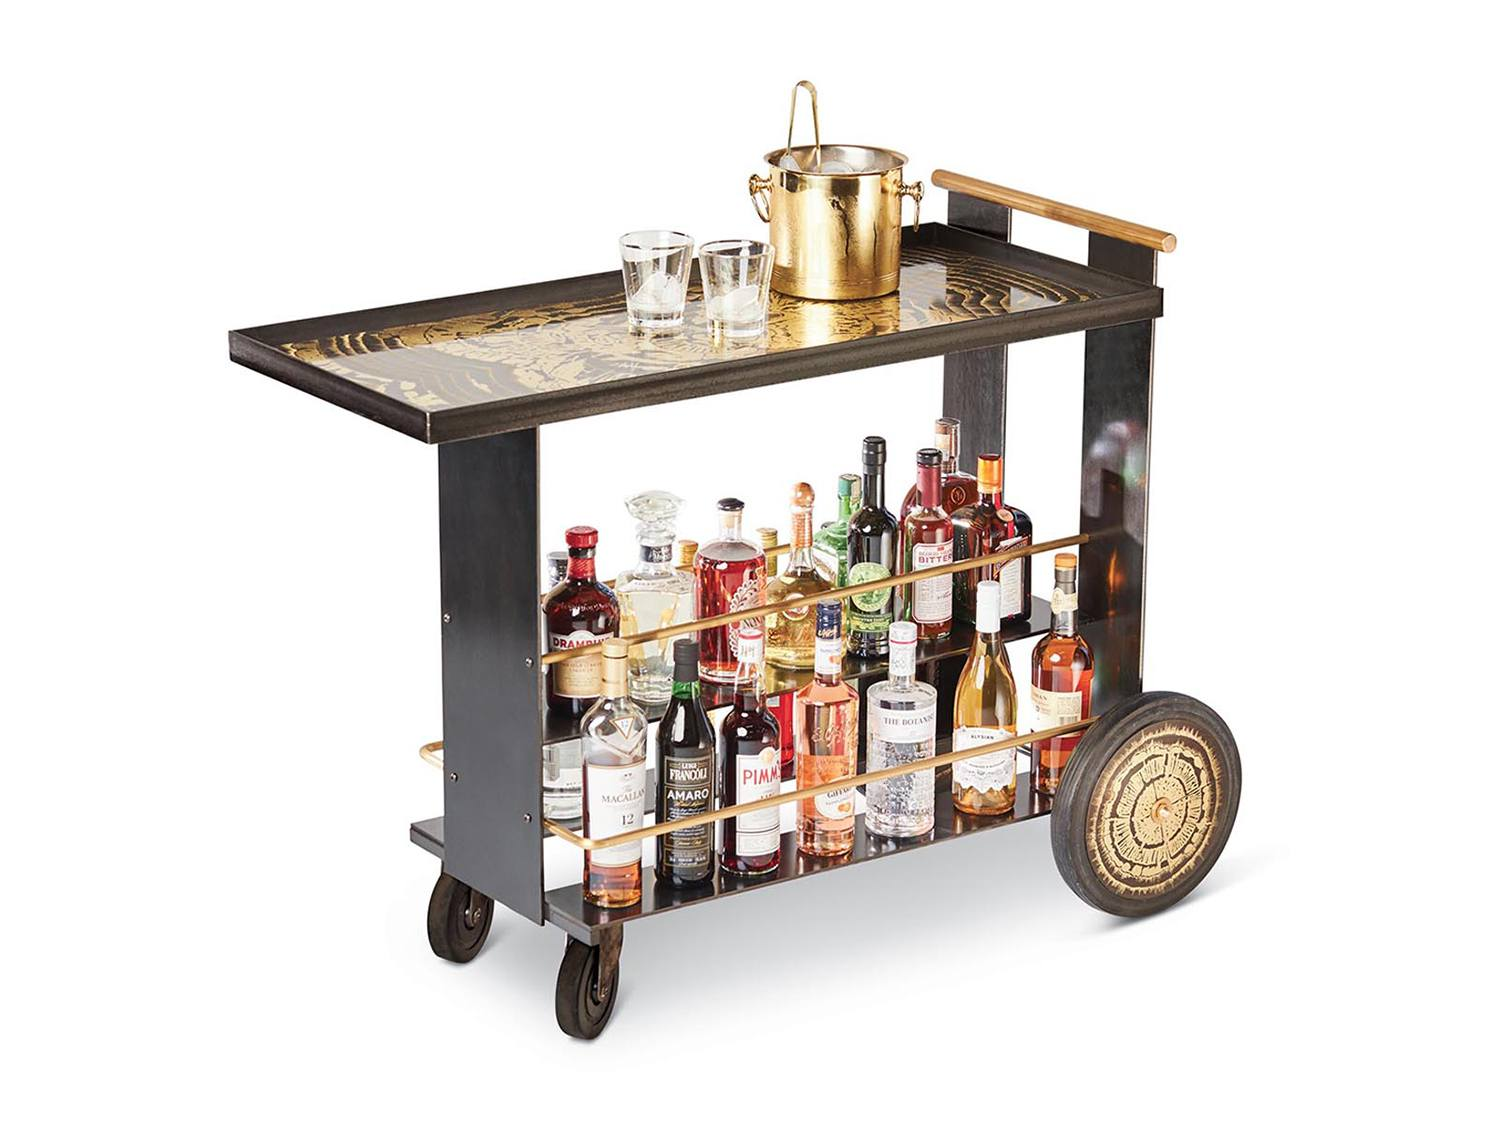 Festive Cocktails At Home Start With The Perfect Bar Cart Galerie